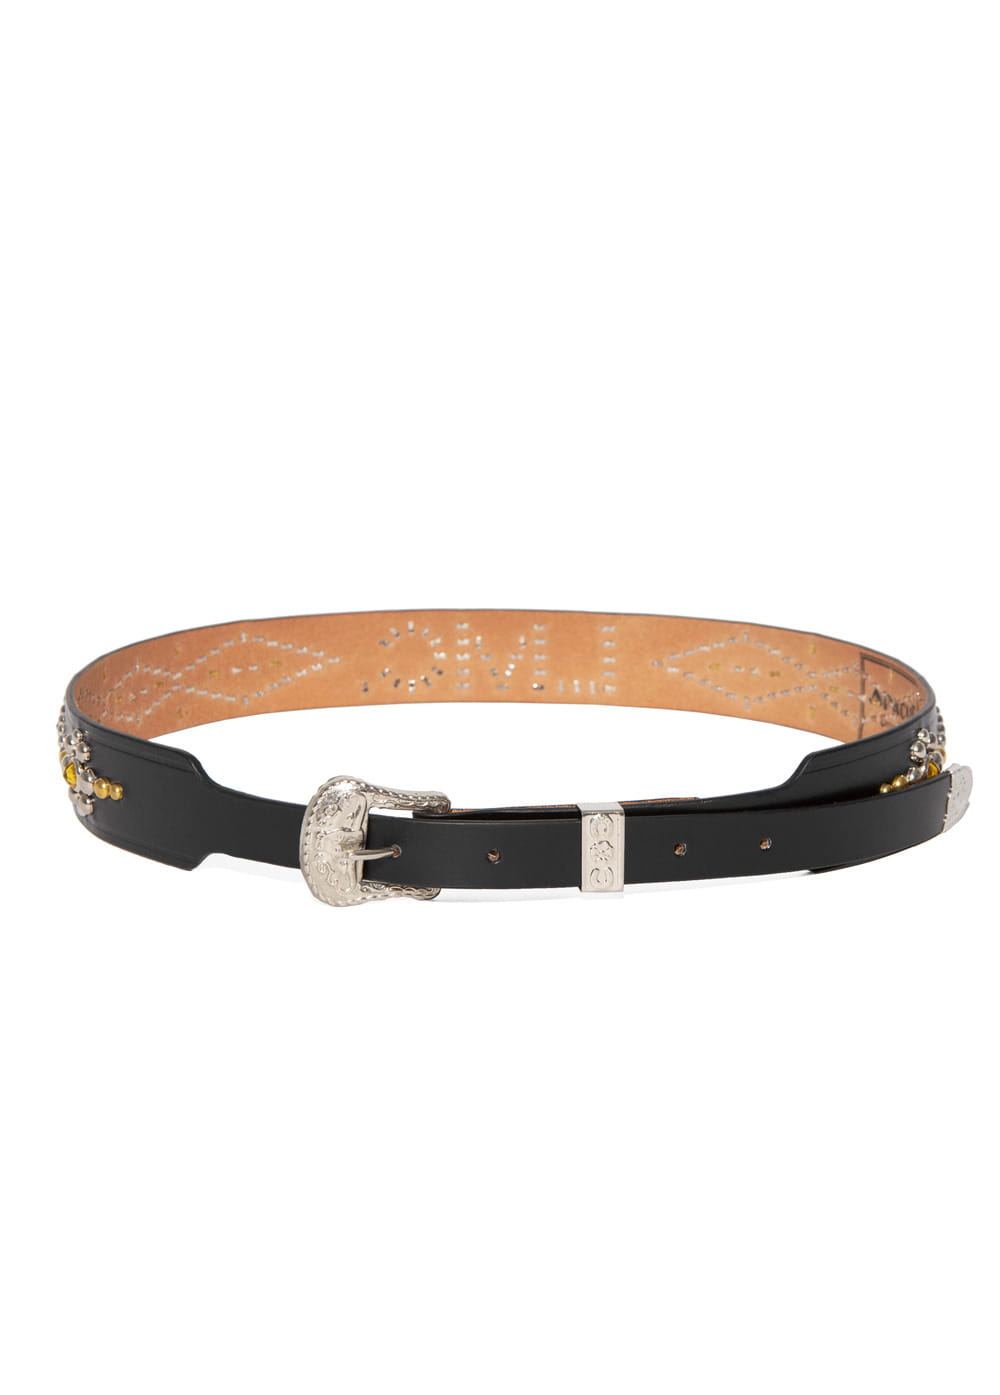 LMC APACHE DRESS STUDDED BELT black